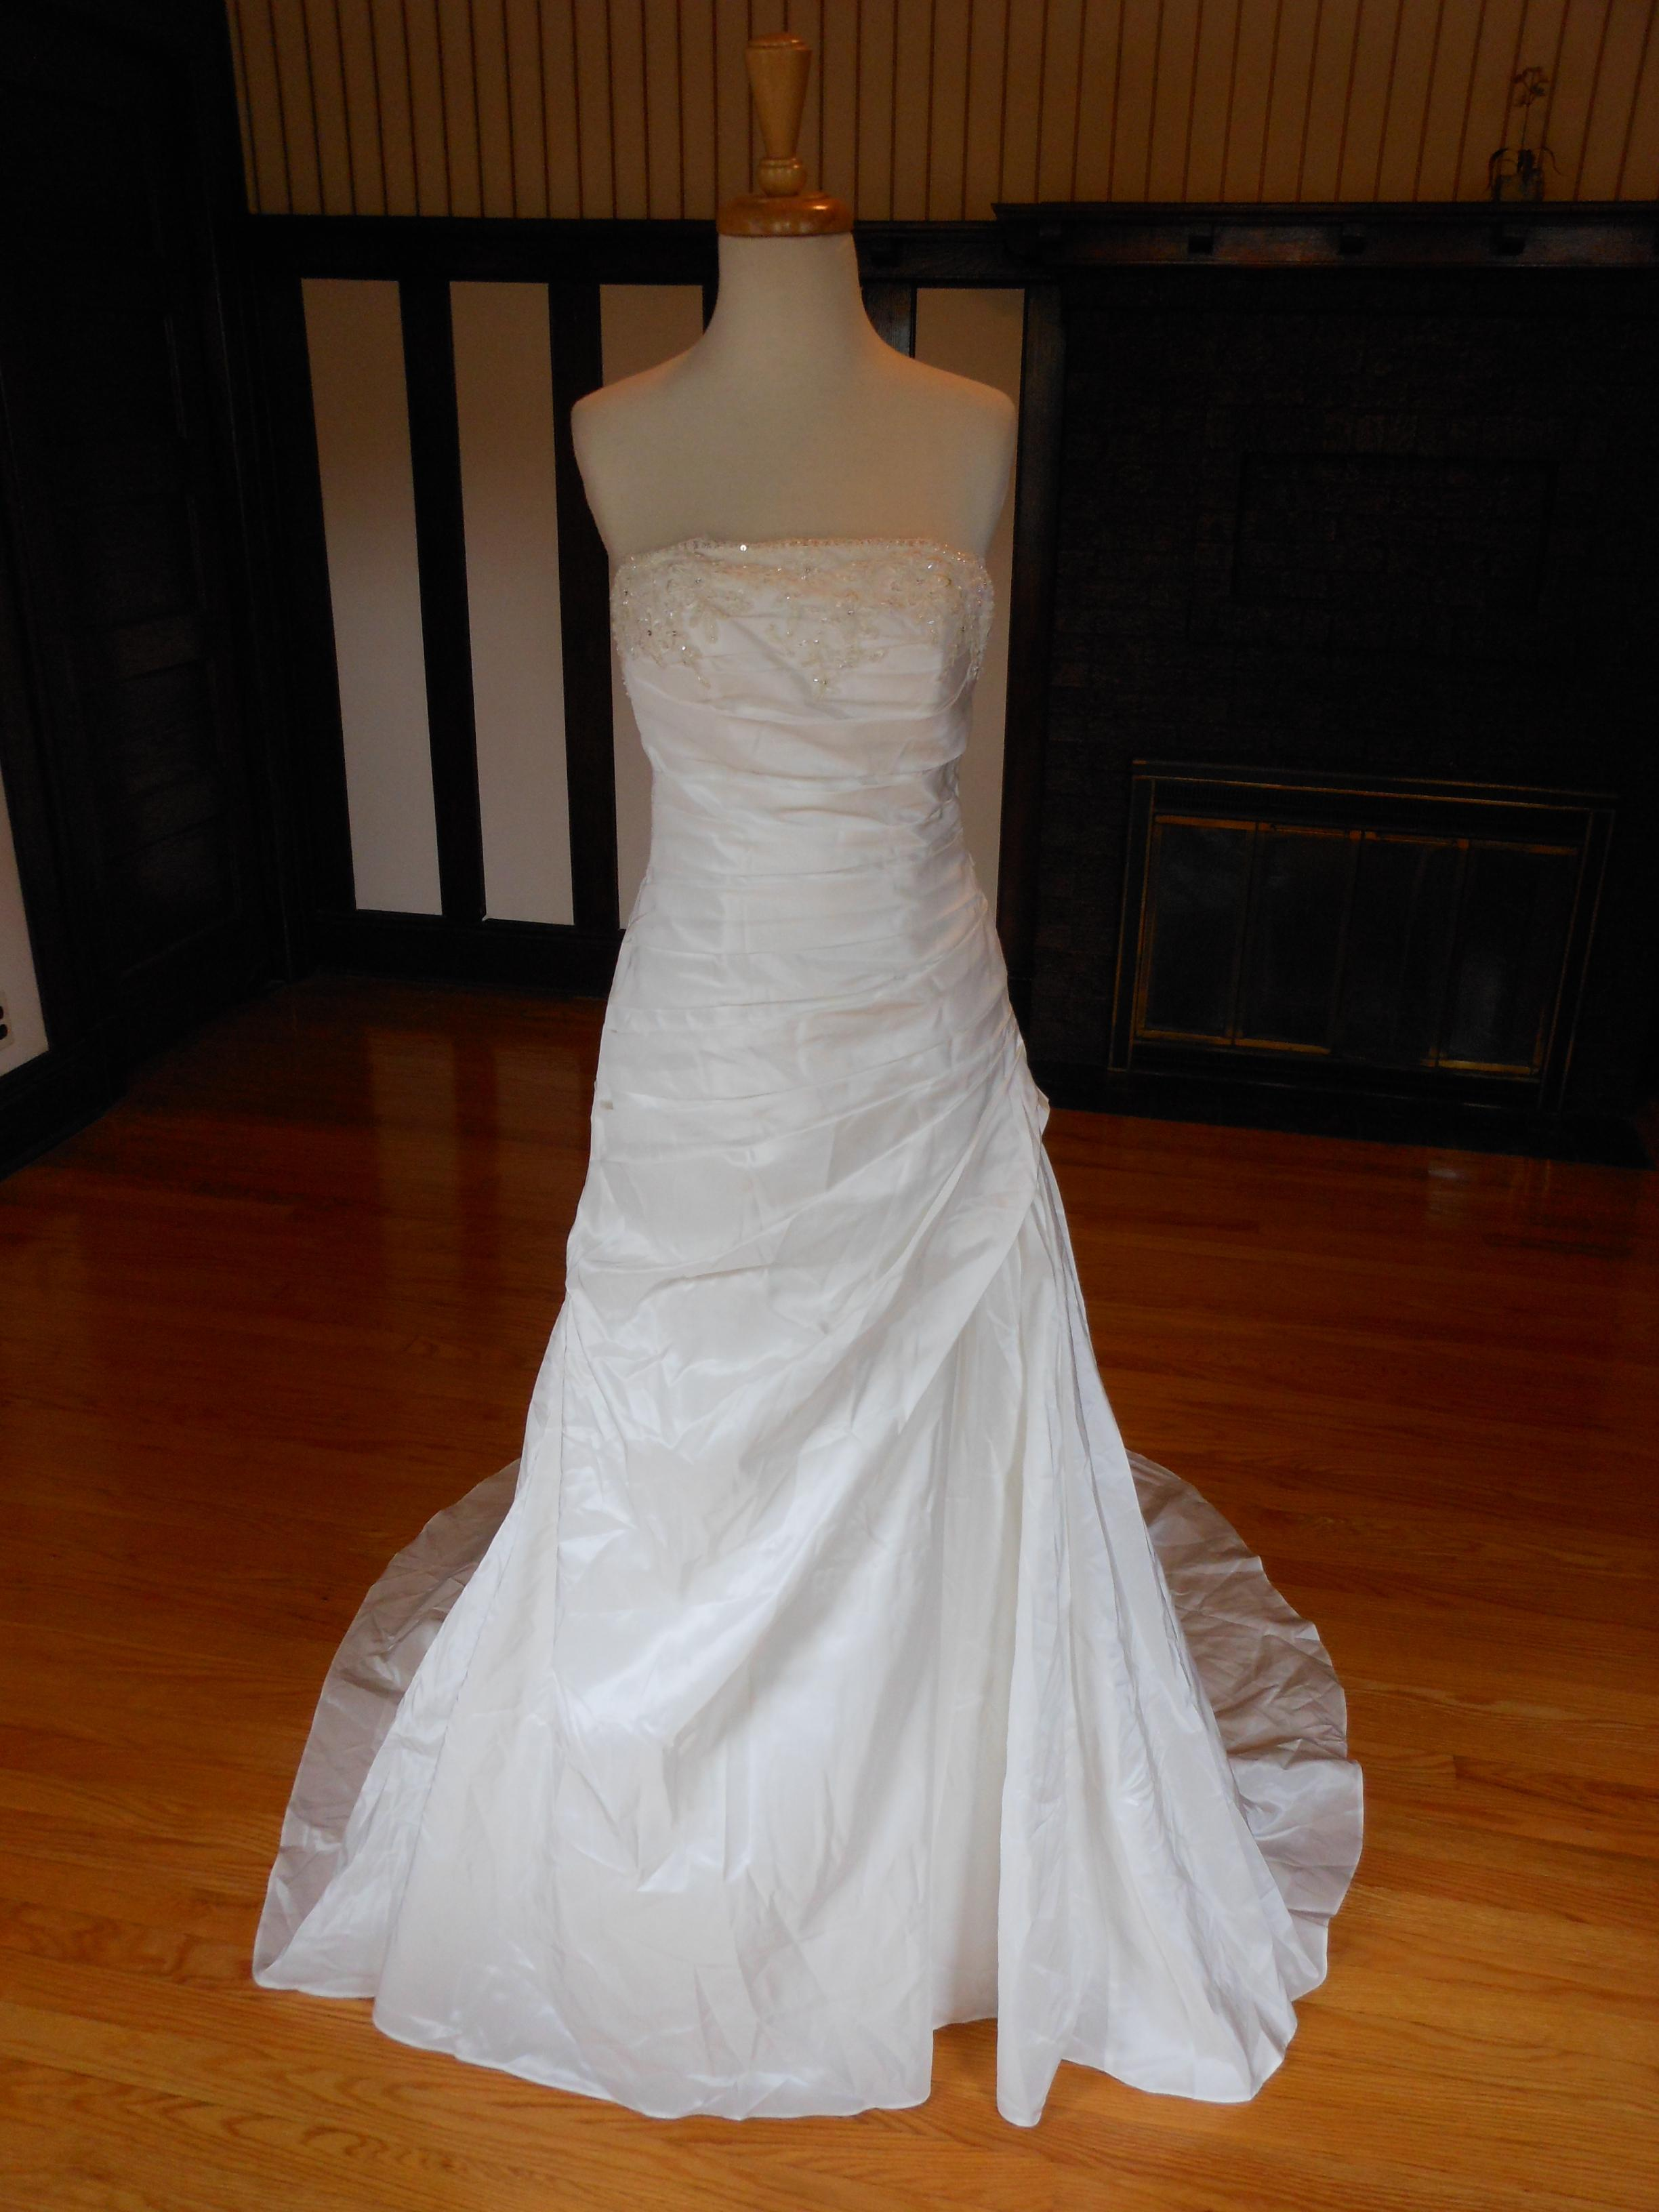 Simple Used Wedding Dresses Buy U Sell Your Dress Tradesy With Old